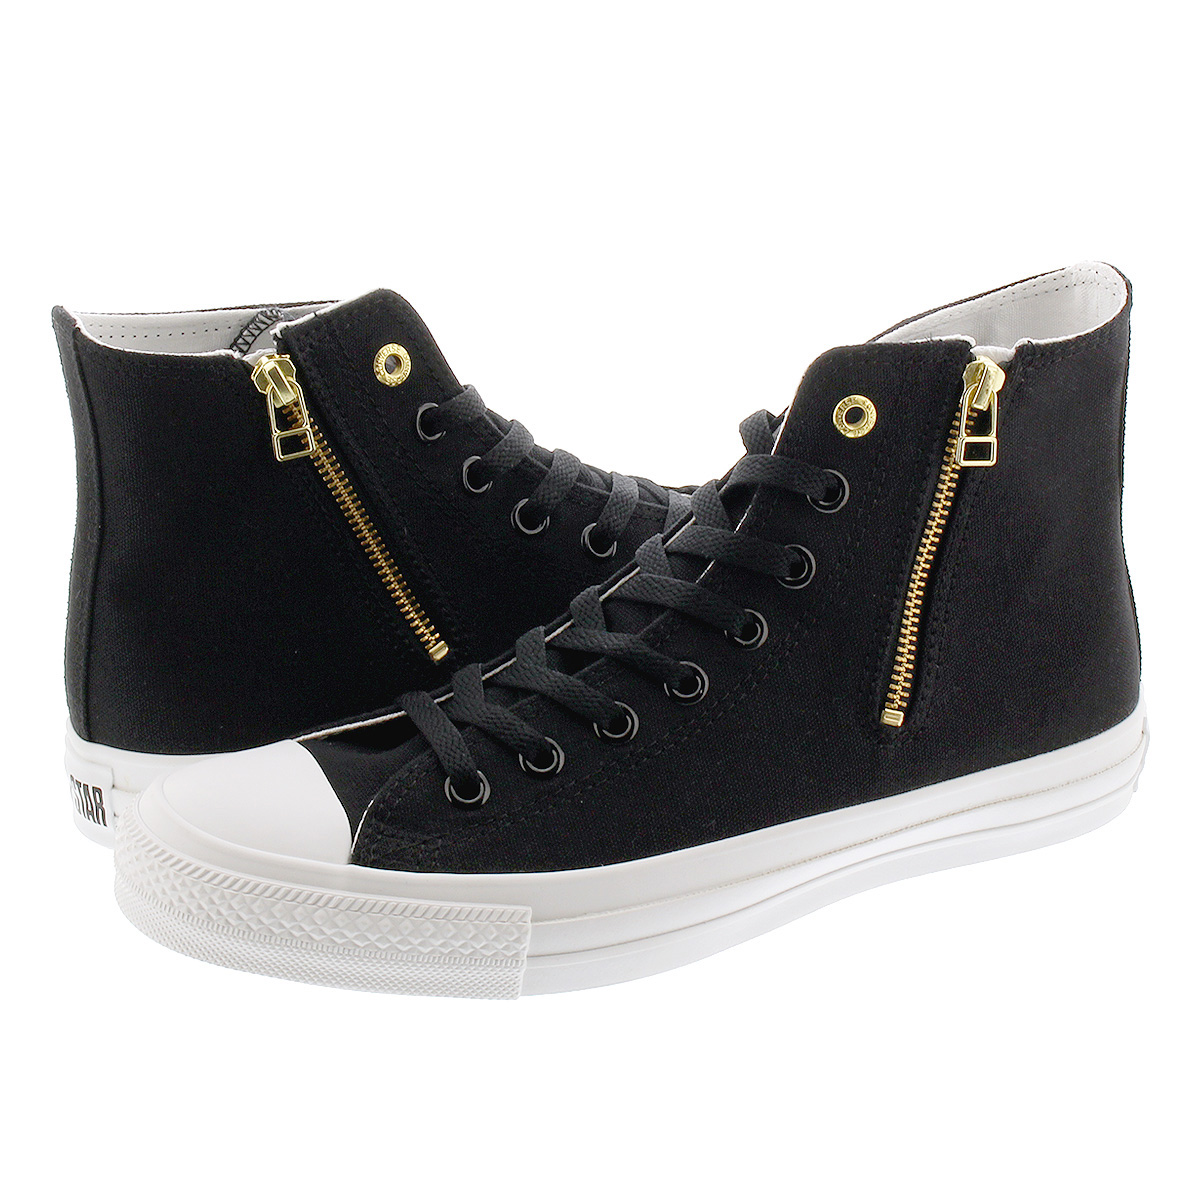 CONVERSE ALL STAR GOLDZIP II HI Converse all stars gold zip 2 high BLACK 31301531